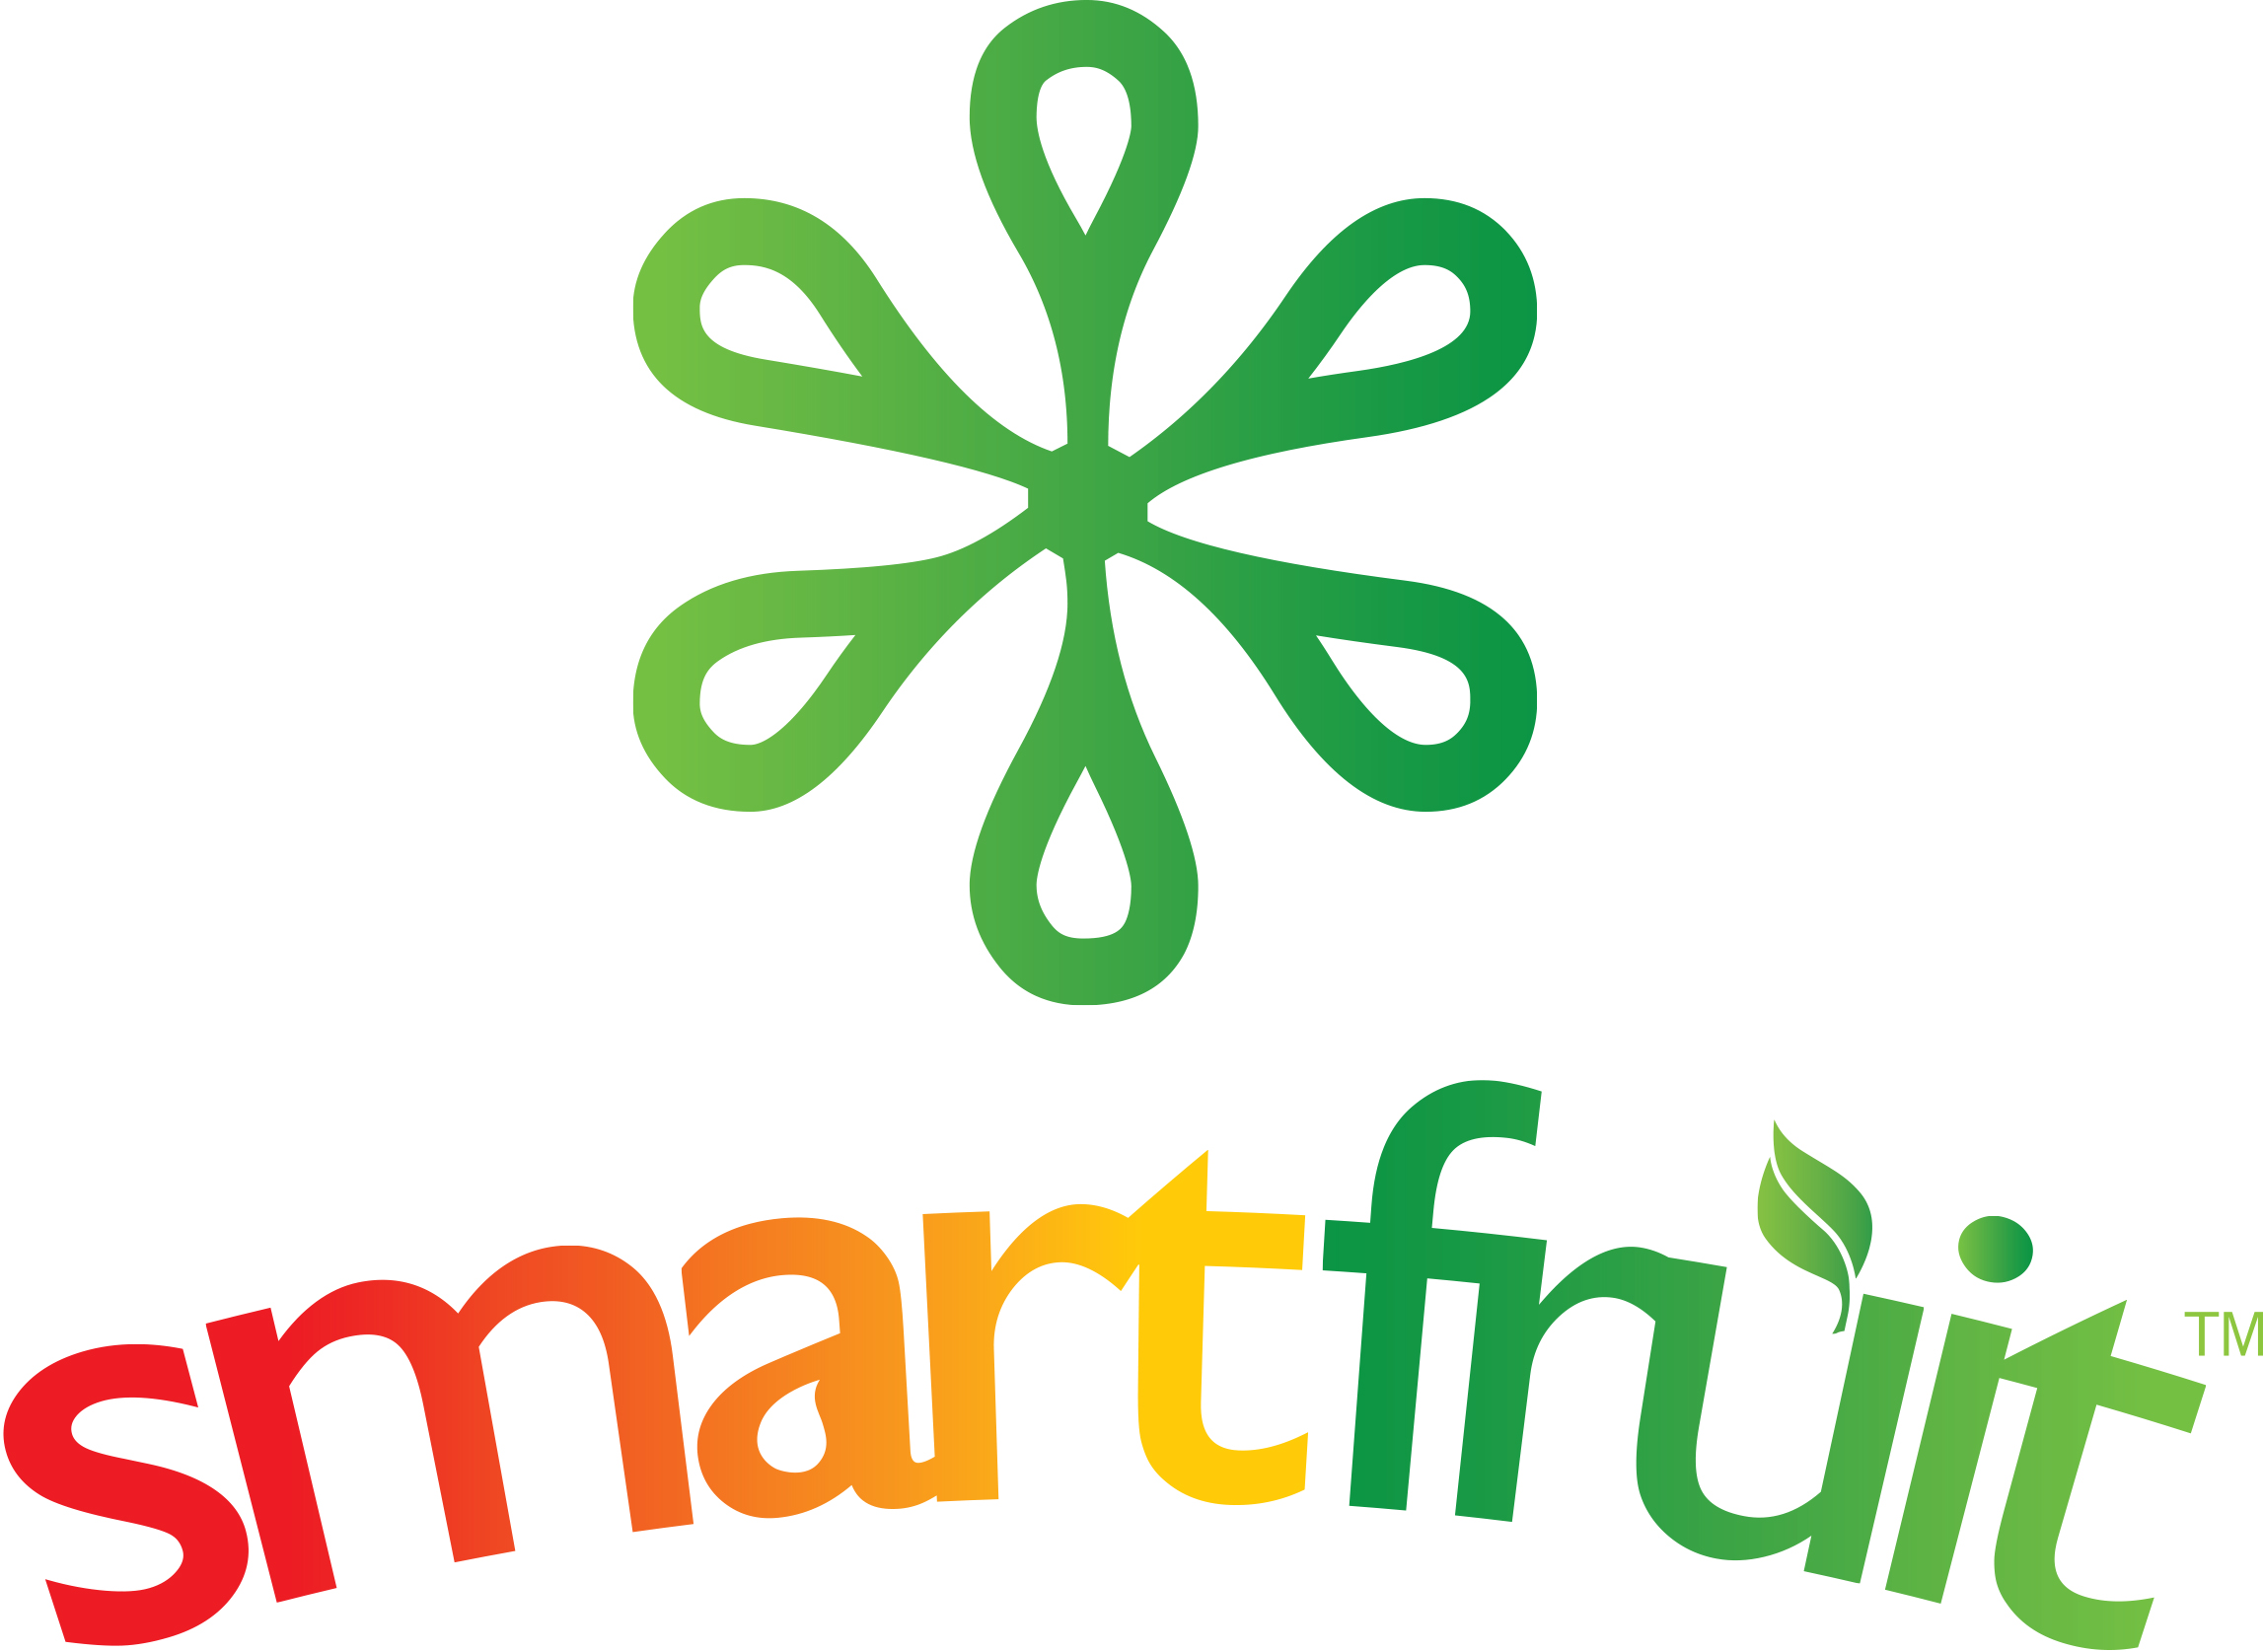 Smartfruit simple smartfruit is a certified non gmo 100 real fruit puree with no added sugar preservatives artificial colors or flavors each flavor is enhanced with a buycottarizona Images